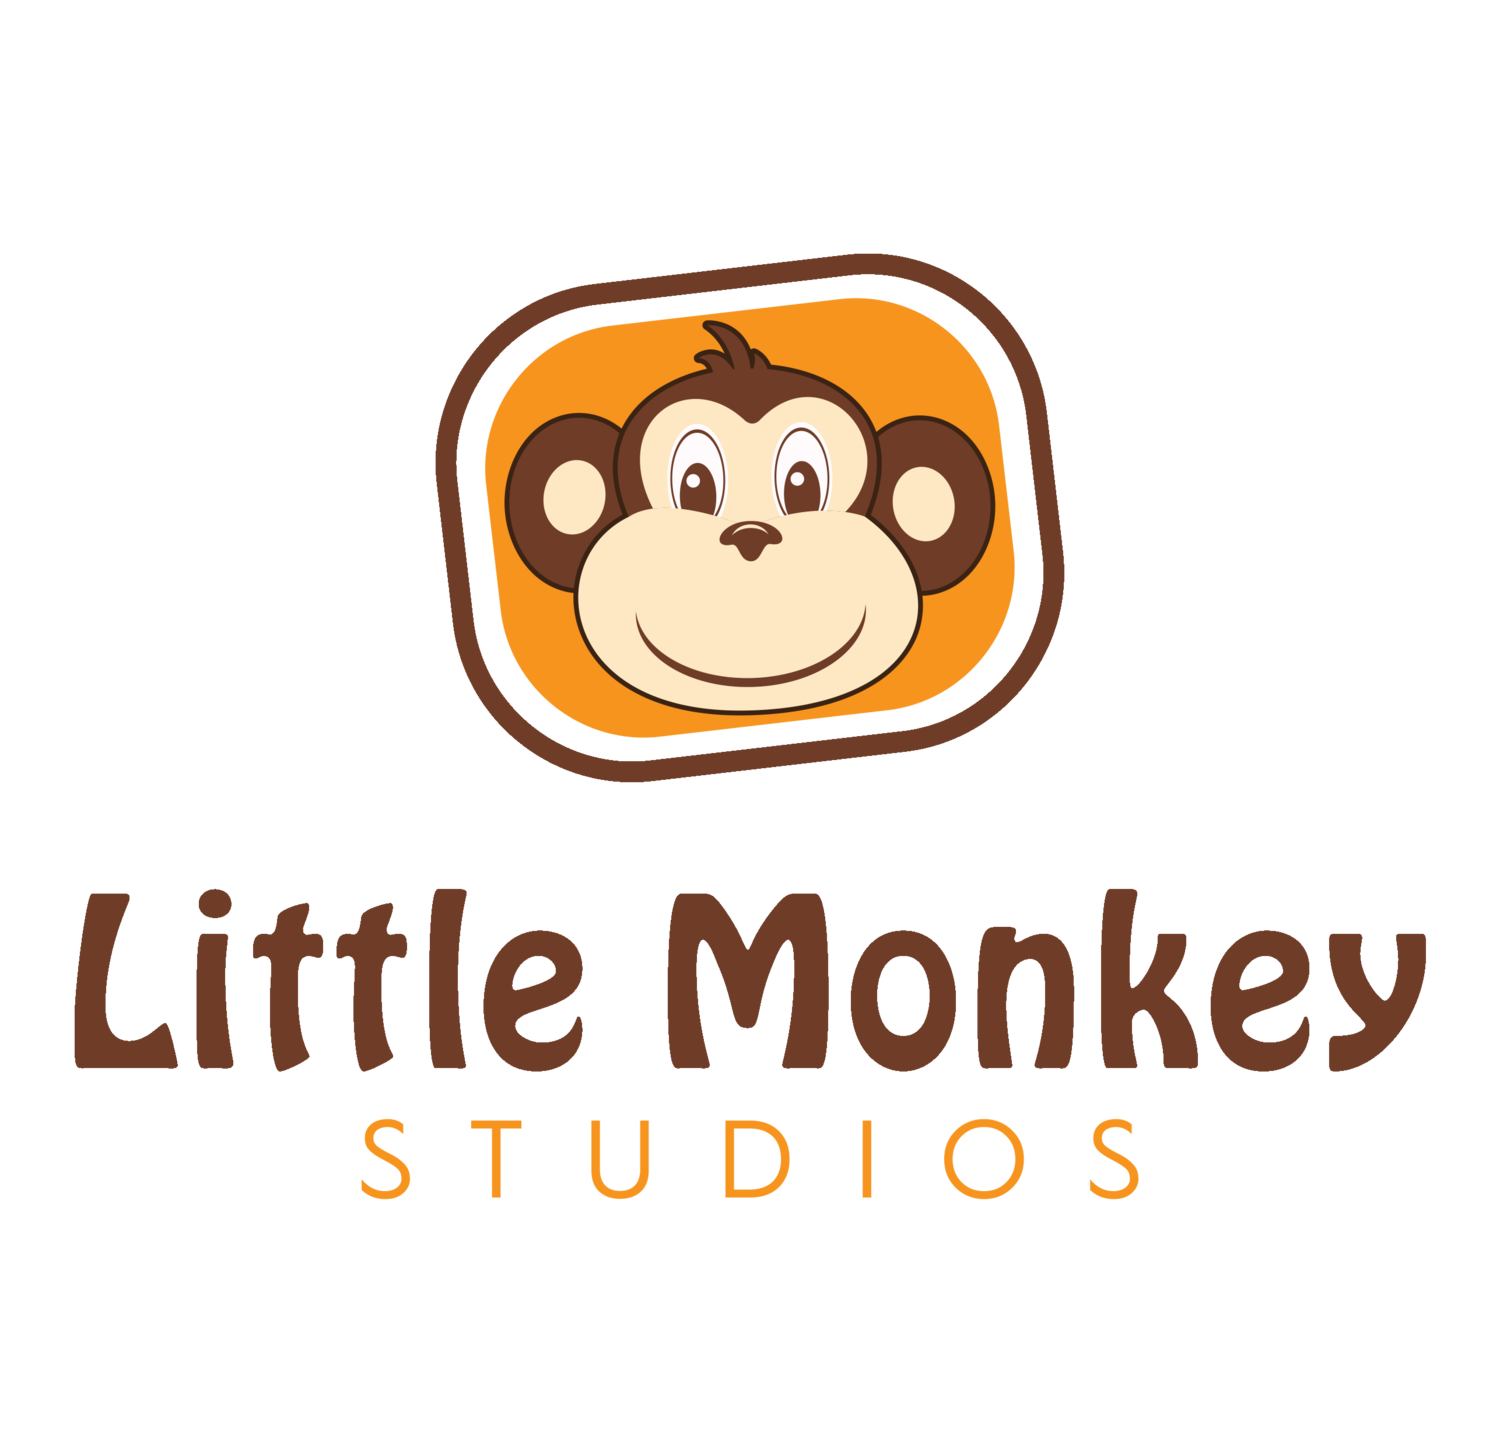 Little Monkey Studios